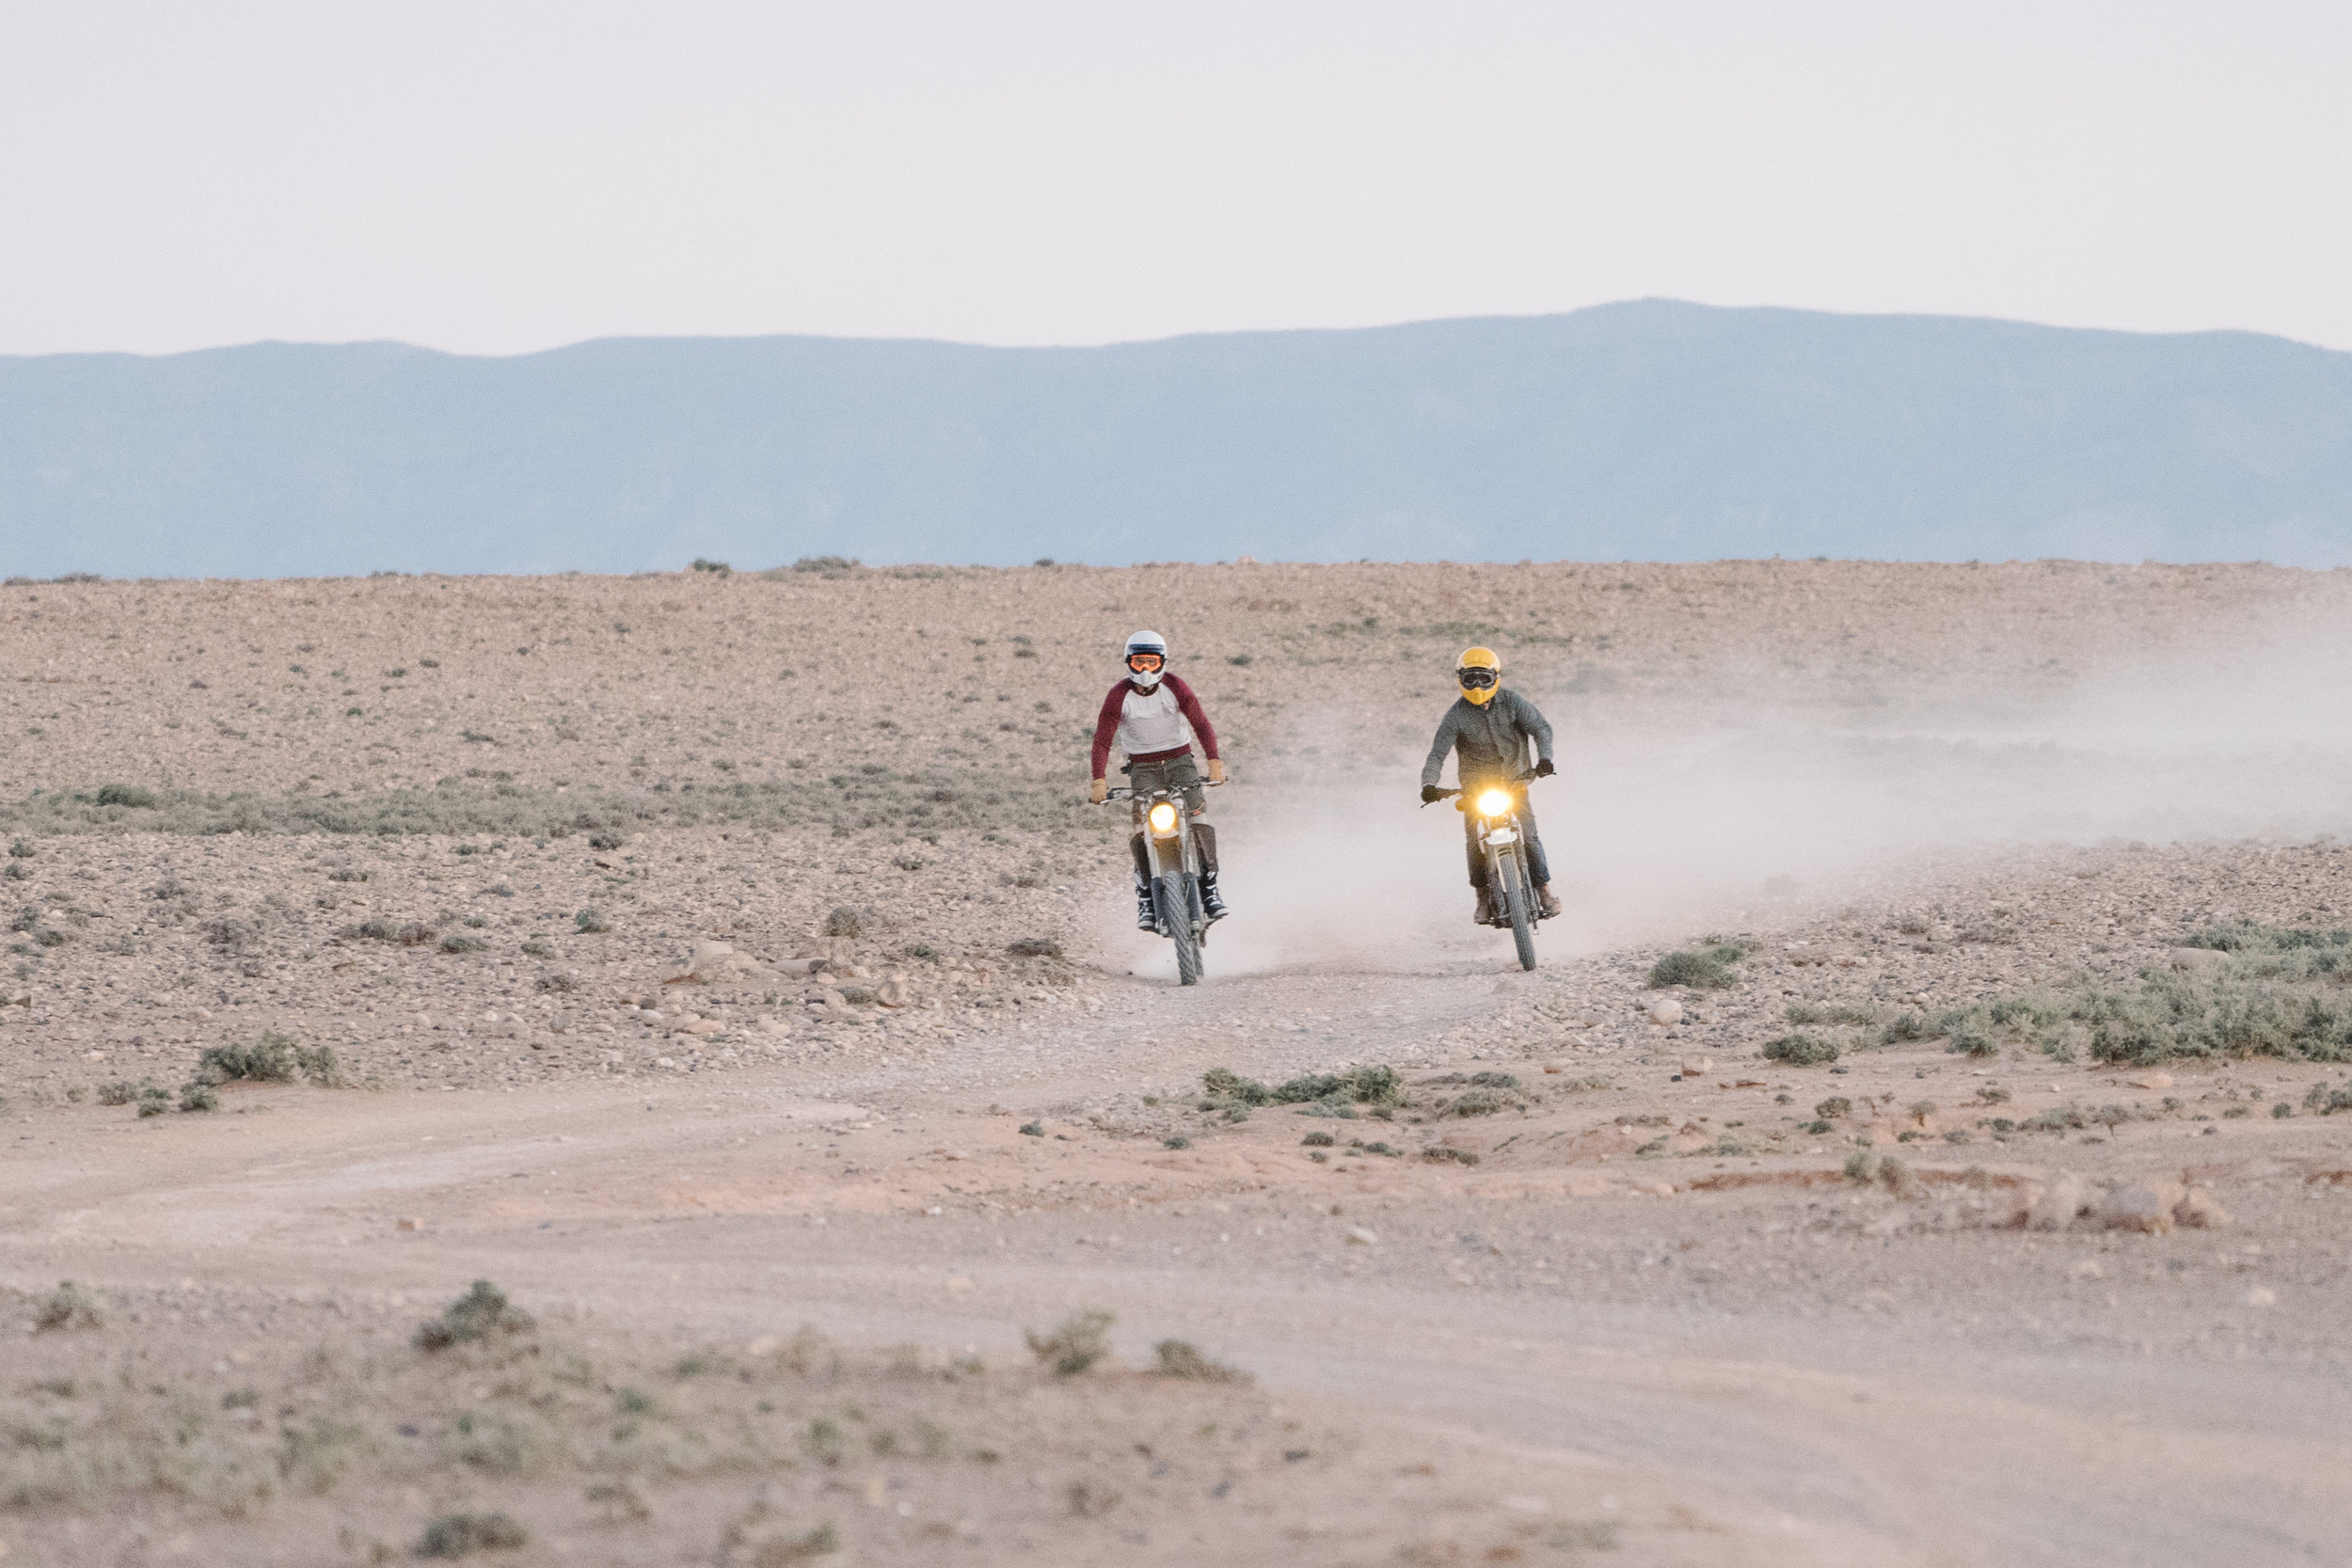 Morocco 2019 - A roadtrip with #HenriTheBus with motorbikes, surfboards and friends around Morocco.Photos are taken by Nicolas Denis, Gregoire Kengen and me.